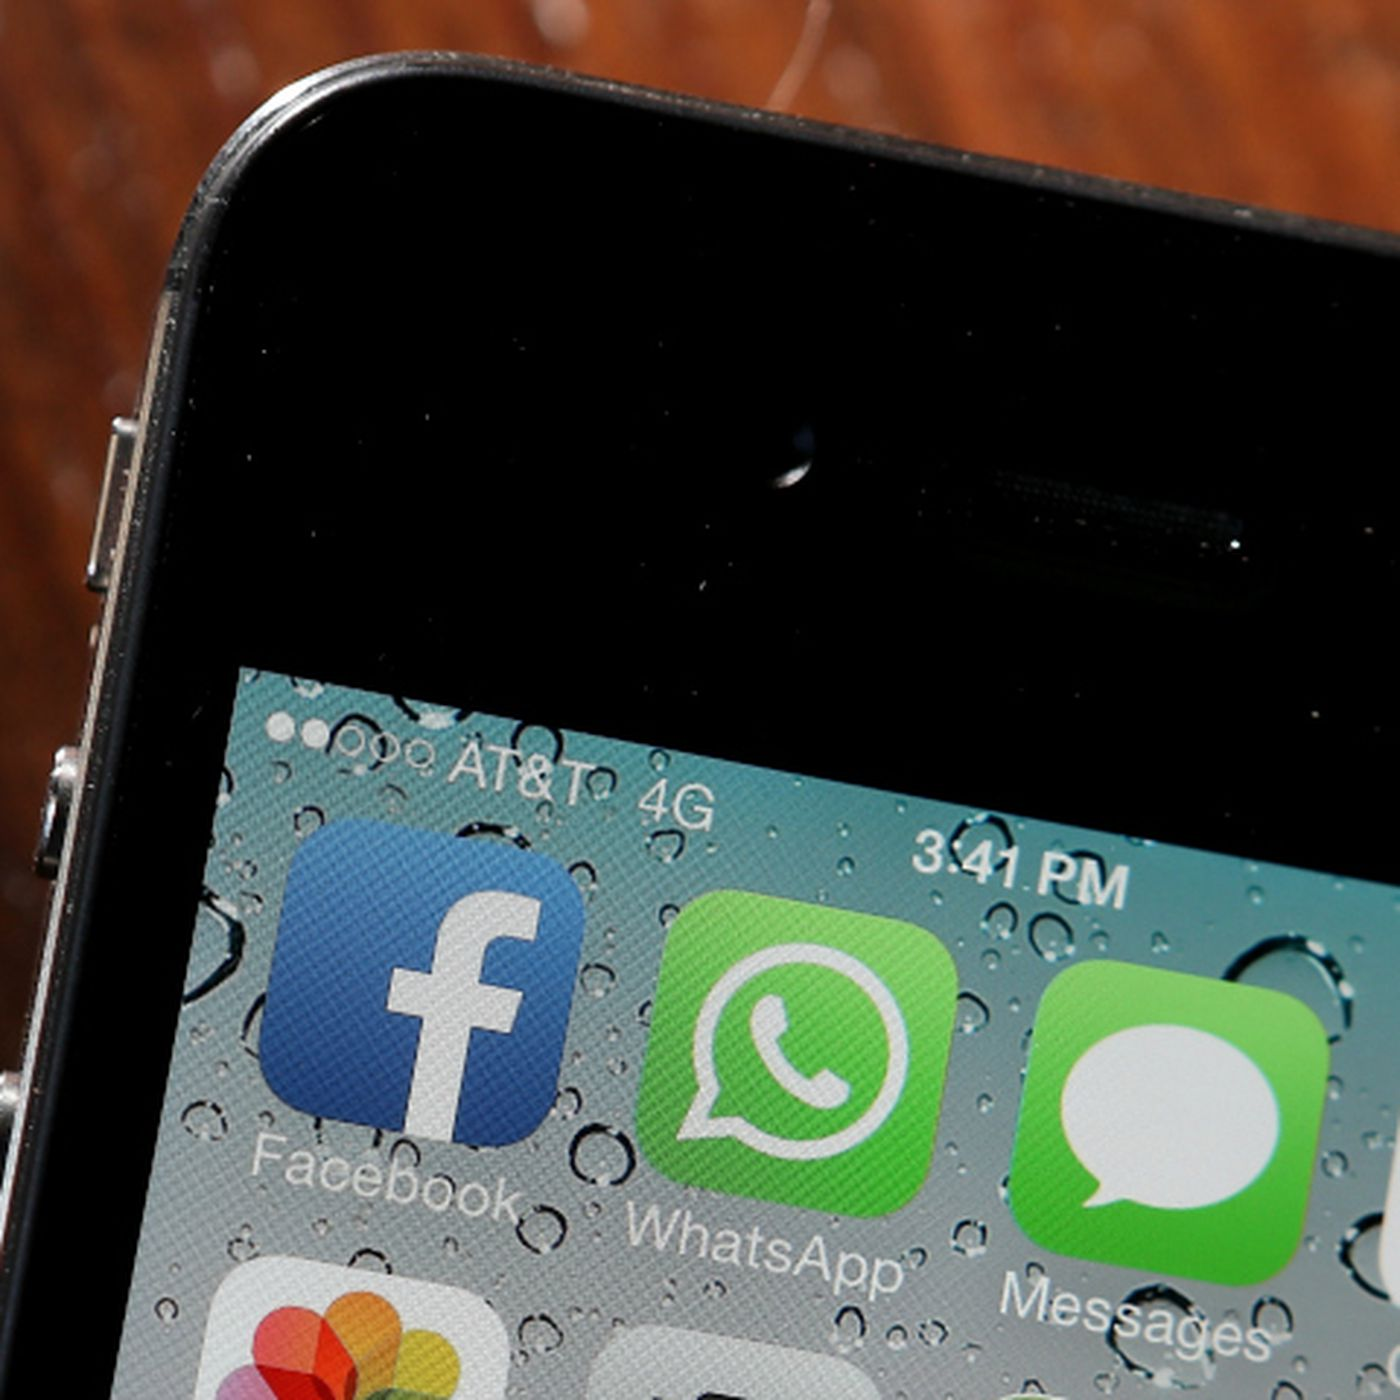 Is Your Messaging App Encrypted? - Vox